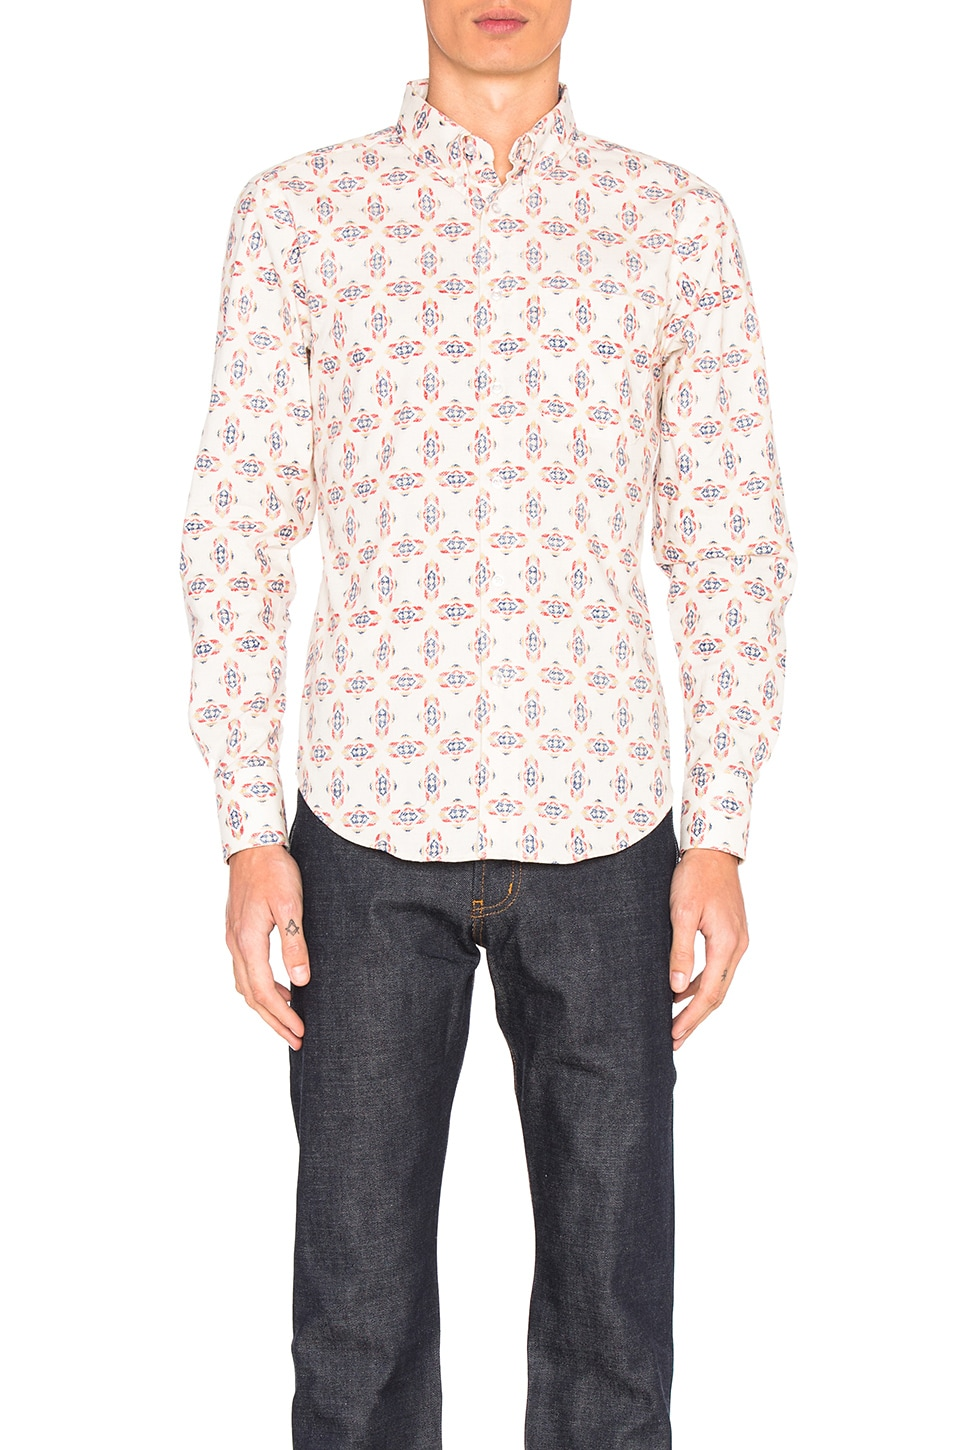 Regular Shirt by Naked & Famous Denim